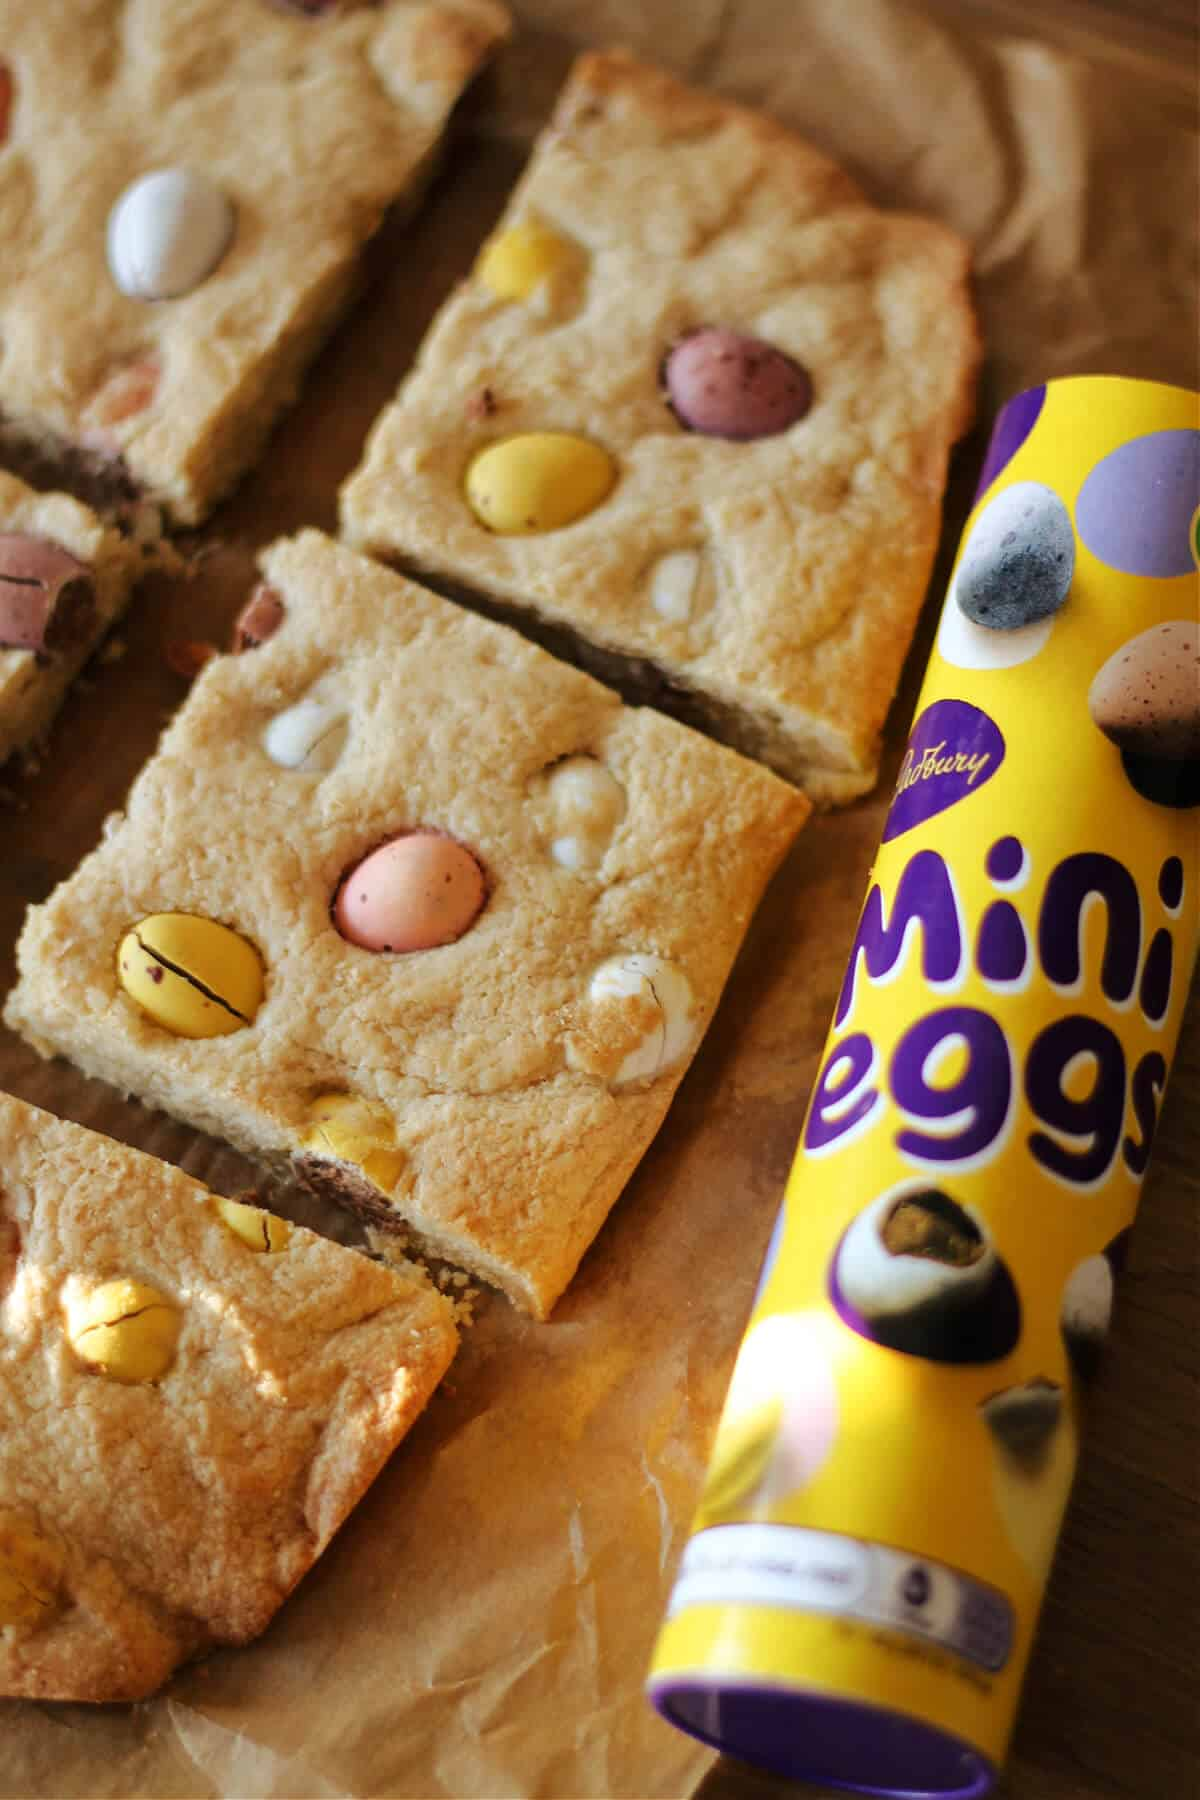 Tube of mini eggs next to cookie bars.